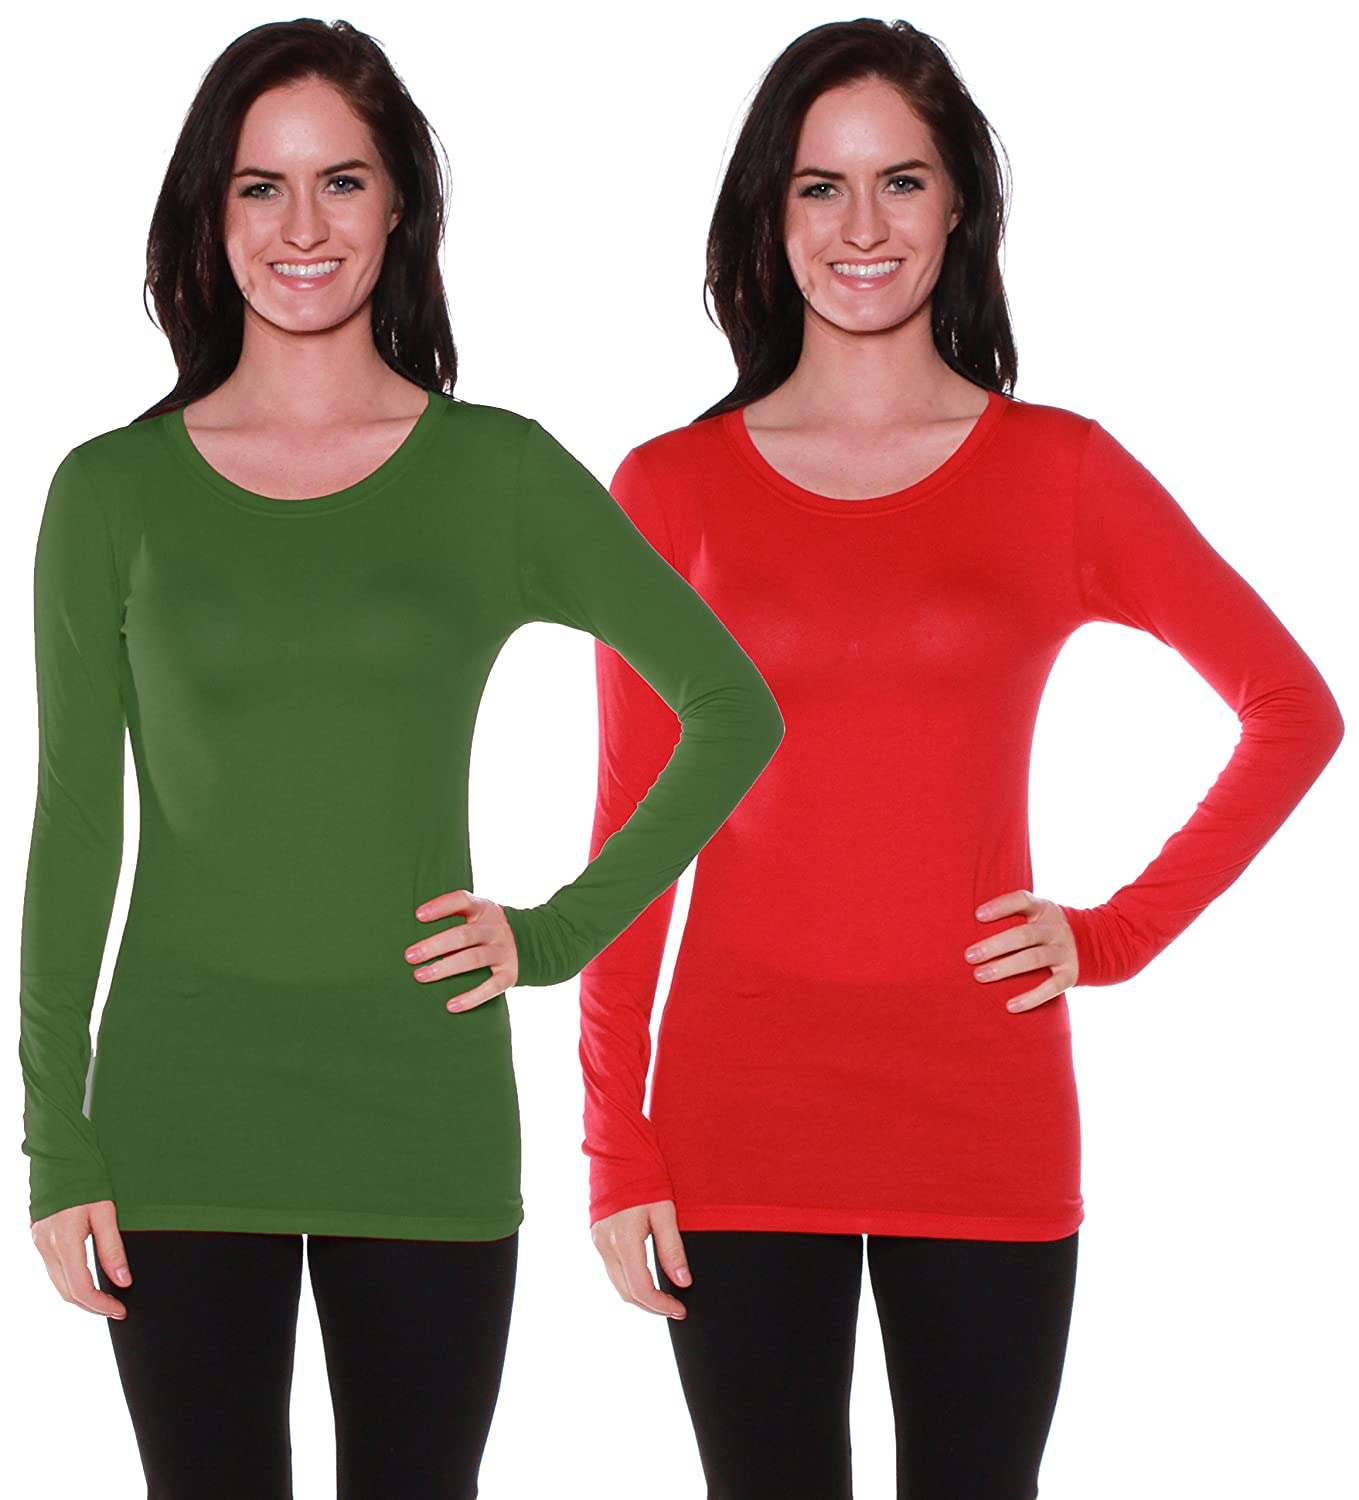 Active Basic Athletic Fitted Plain Long Sleeves Round Crew Neck T Shirt Top